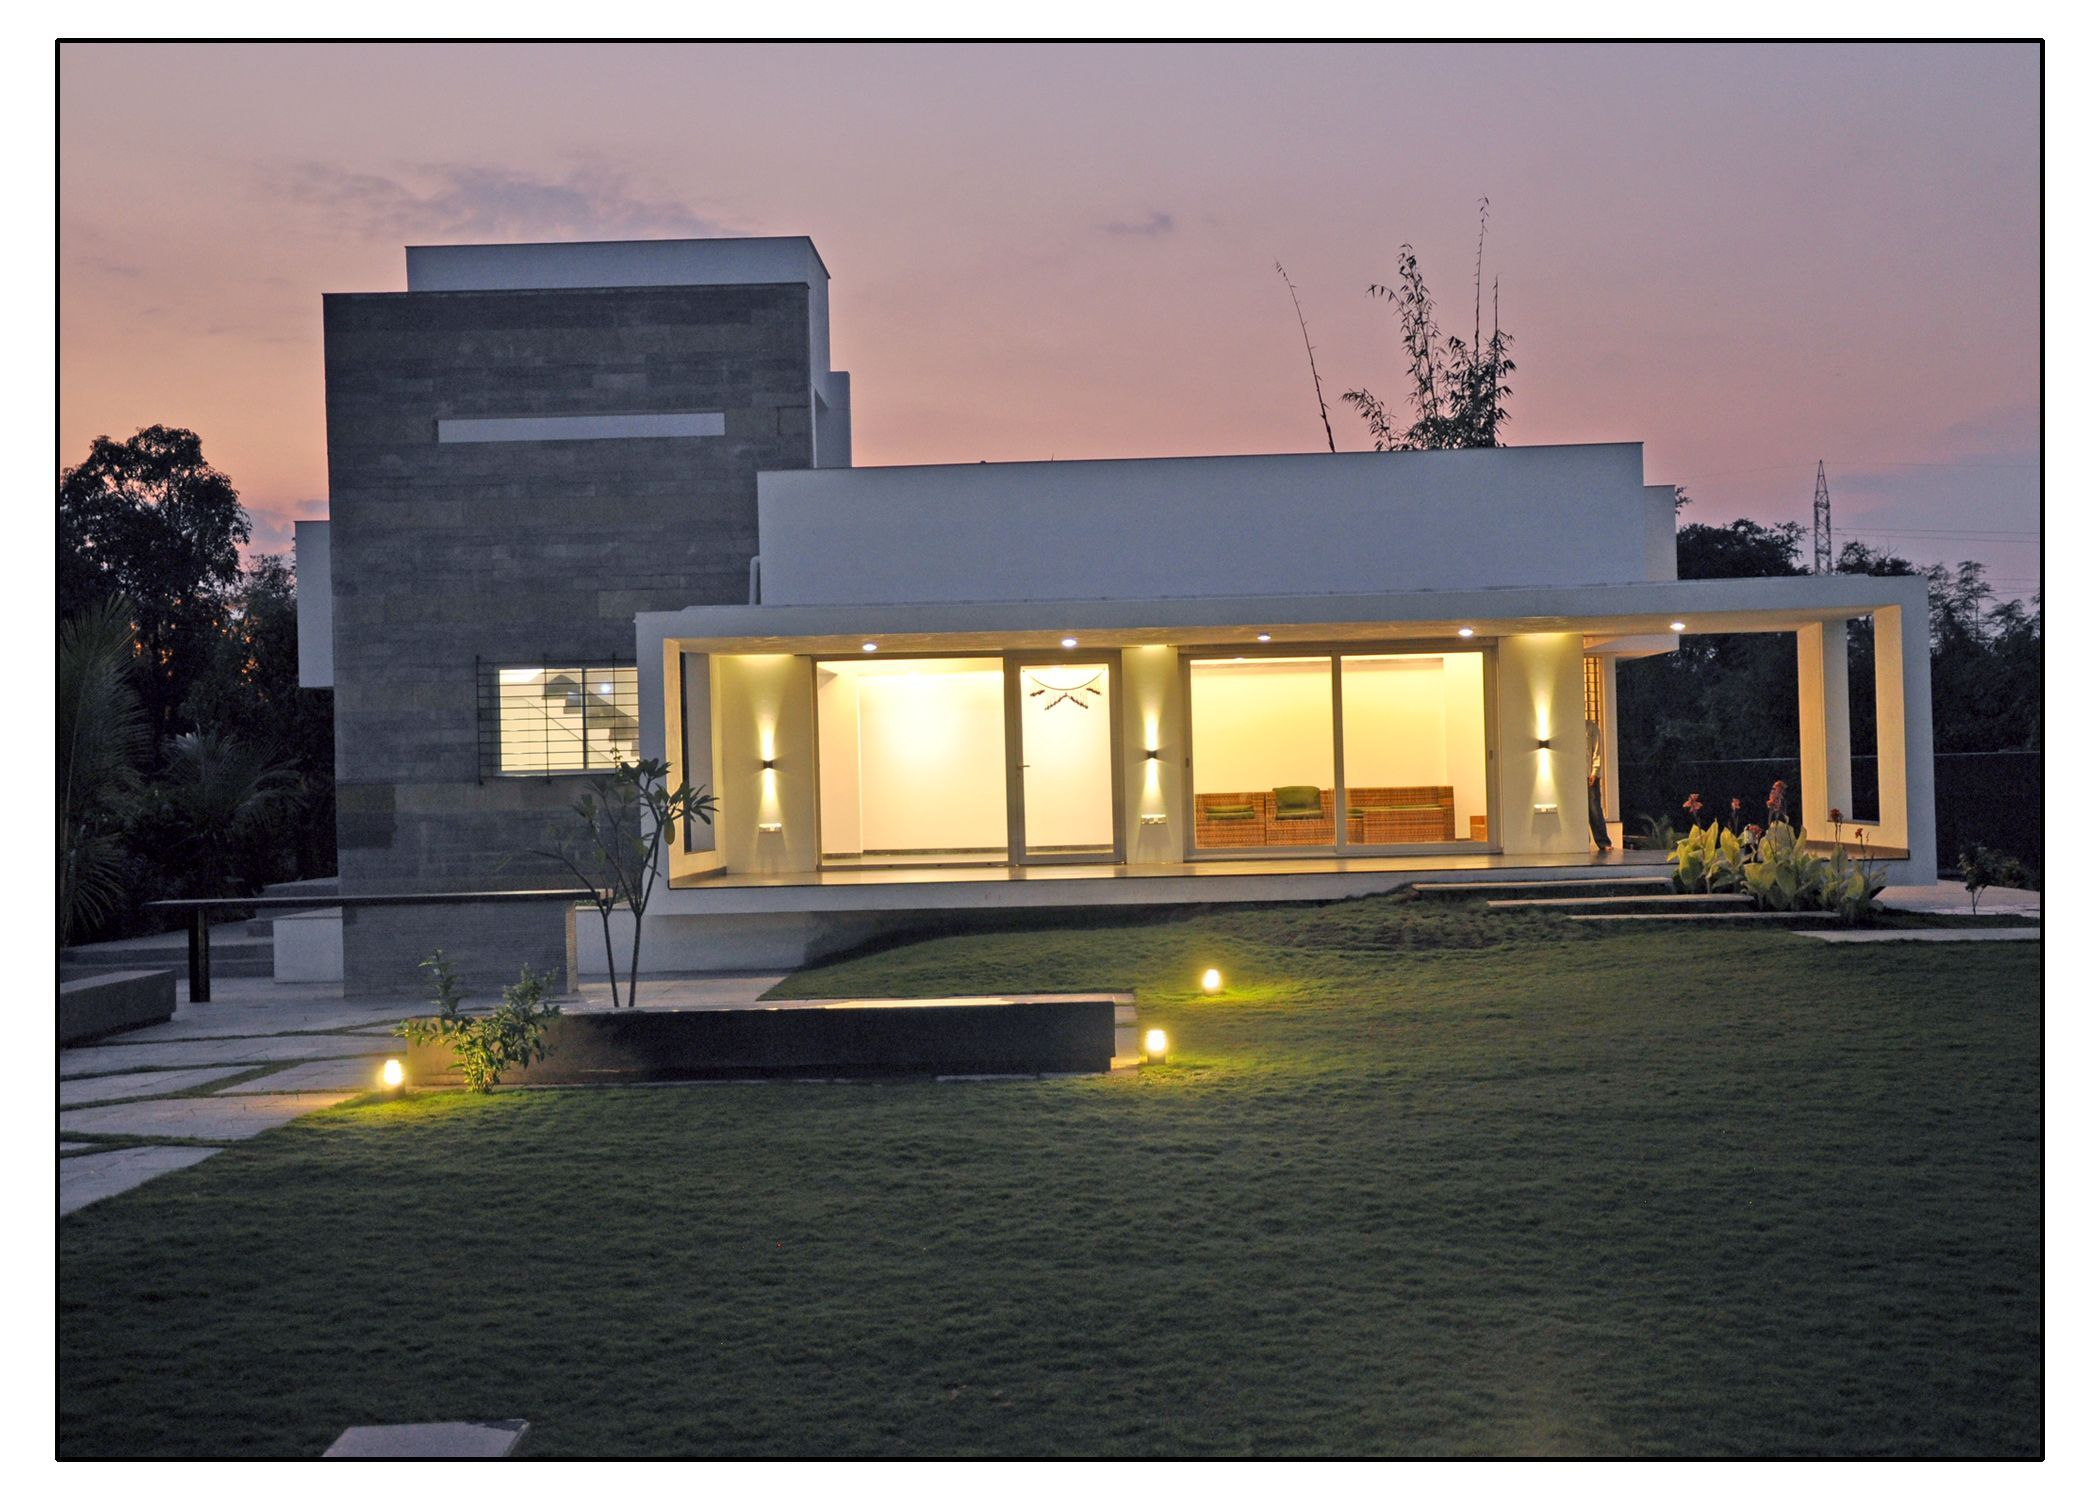 Architecture and interior design projects in india for Architecture design small house india